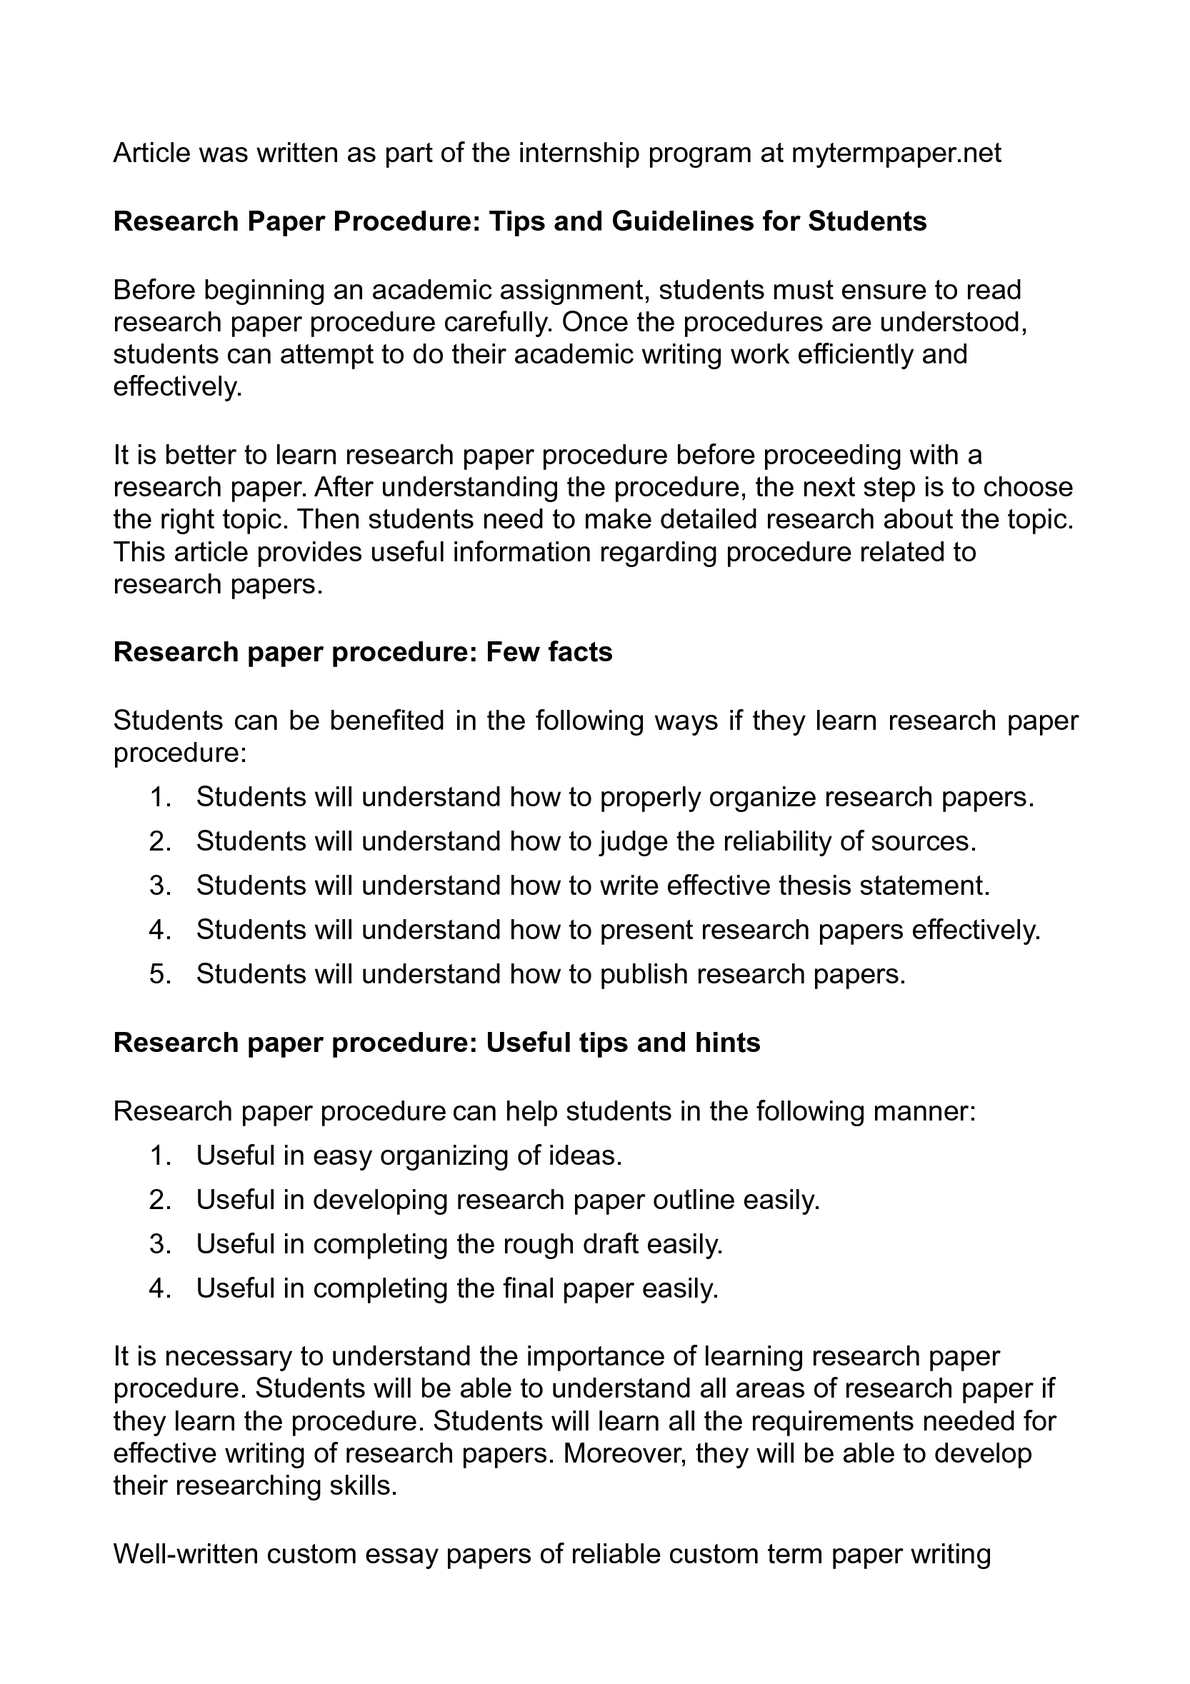 018 How To Do Research Paper Marvelous In Text Citations A Mla Write Introduction Format Full